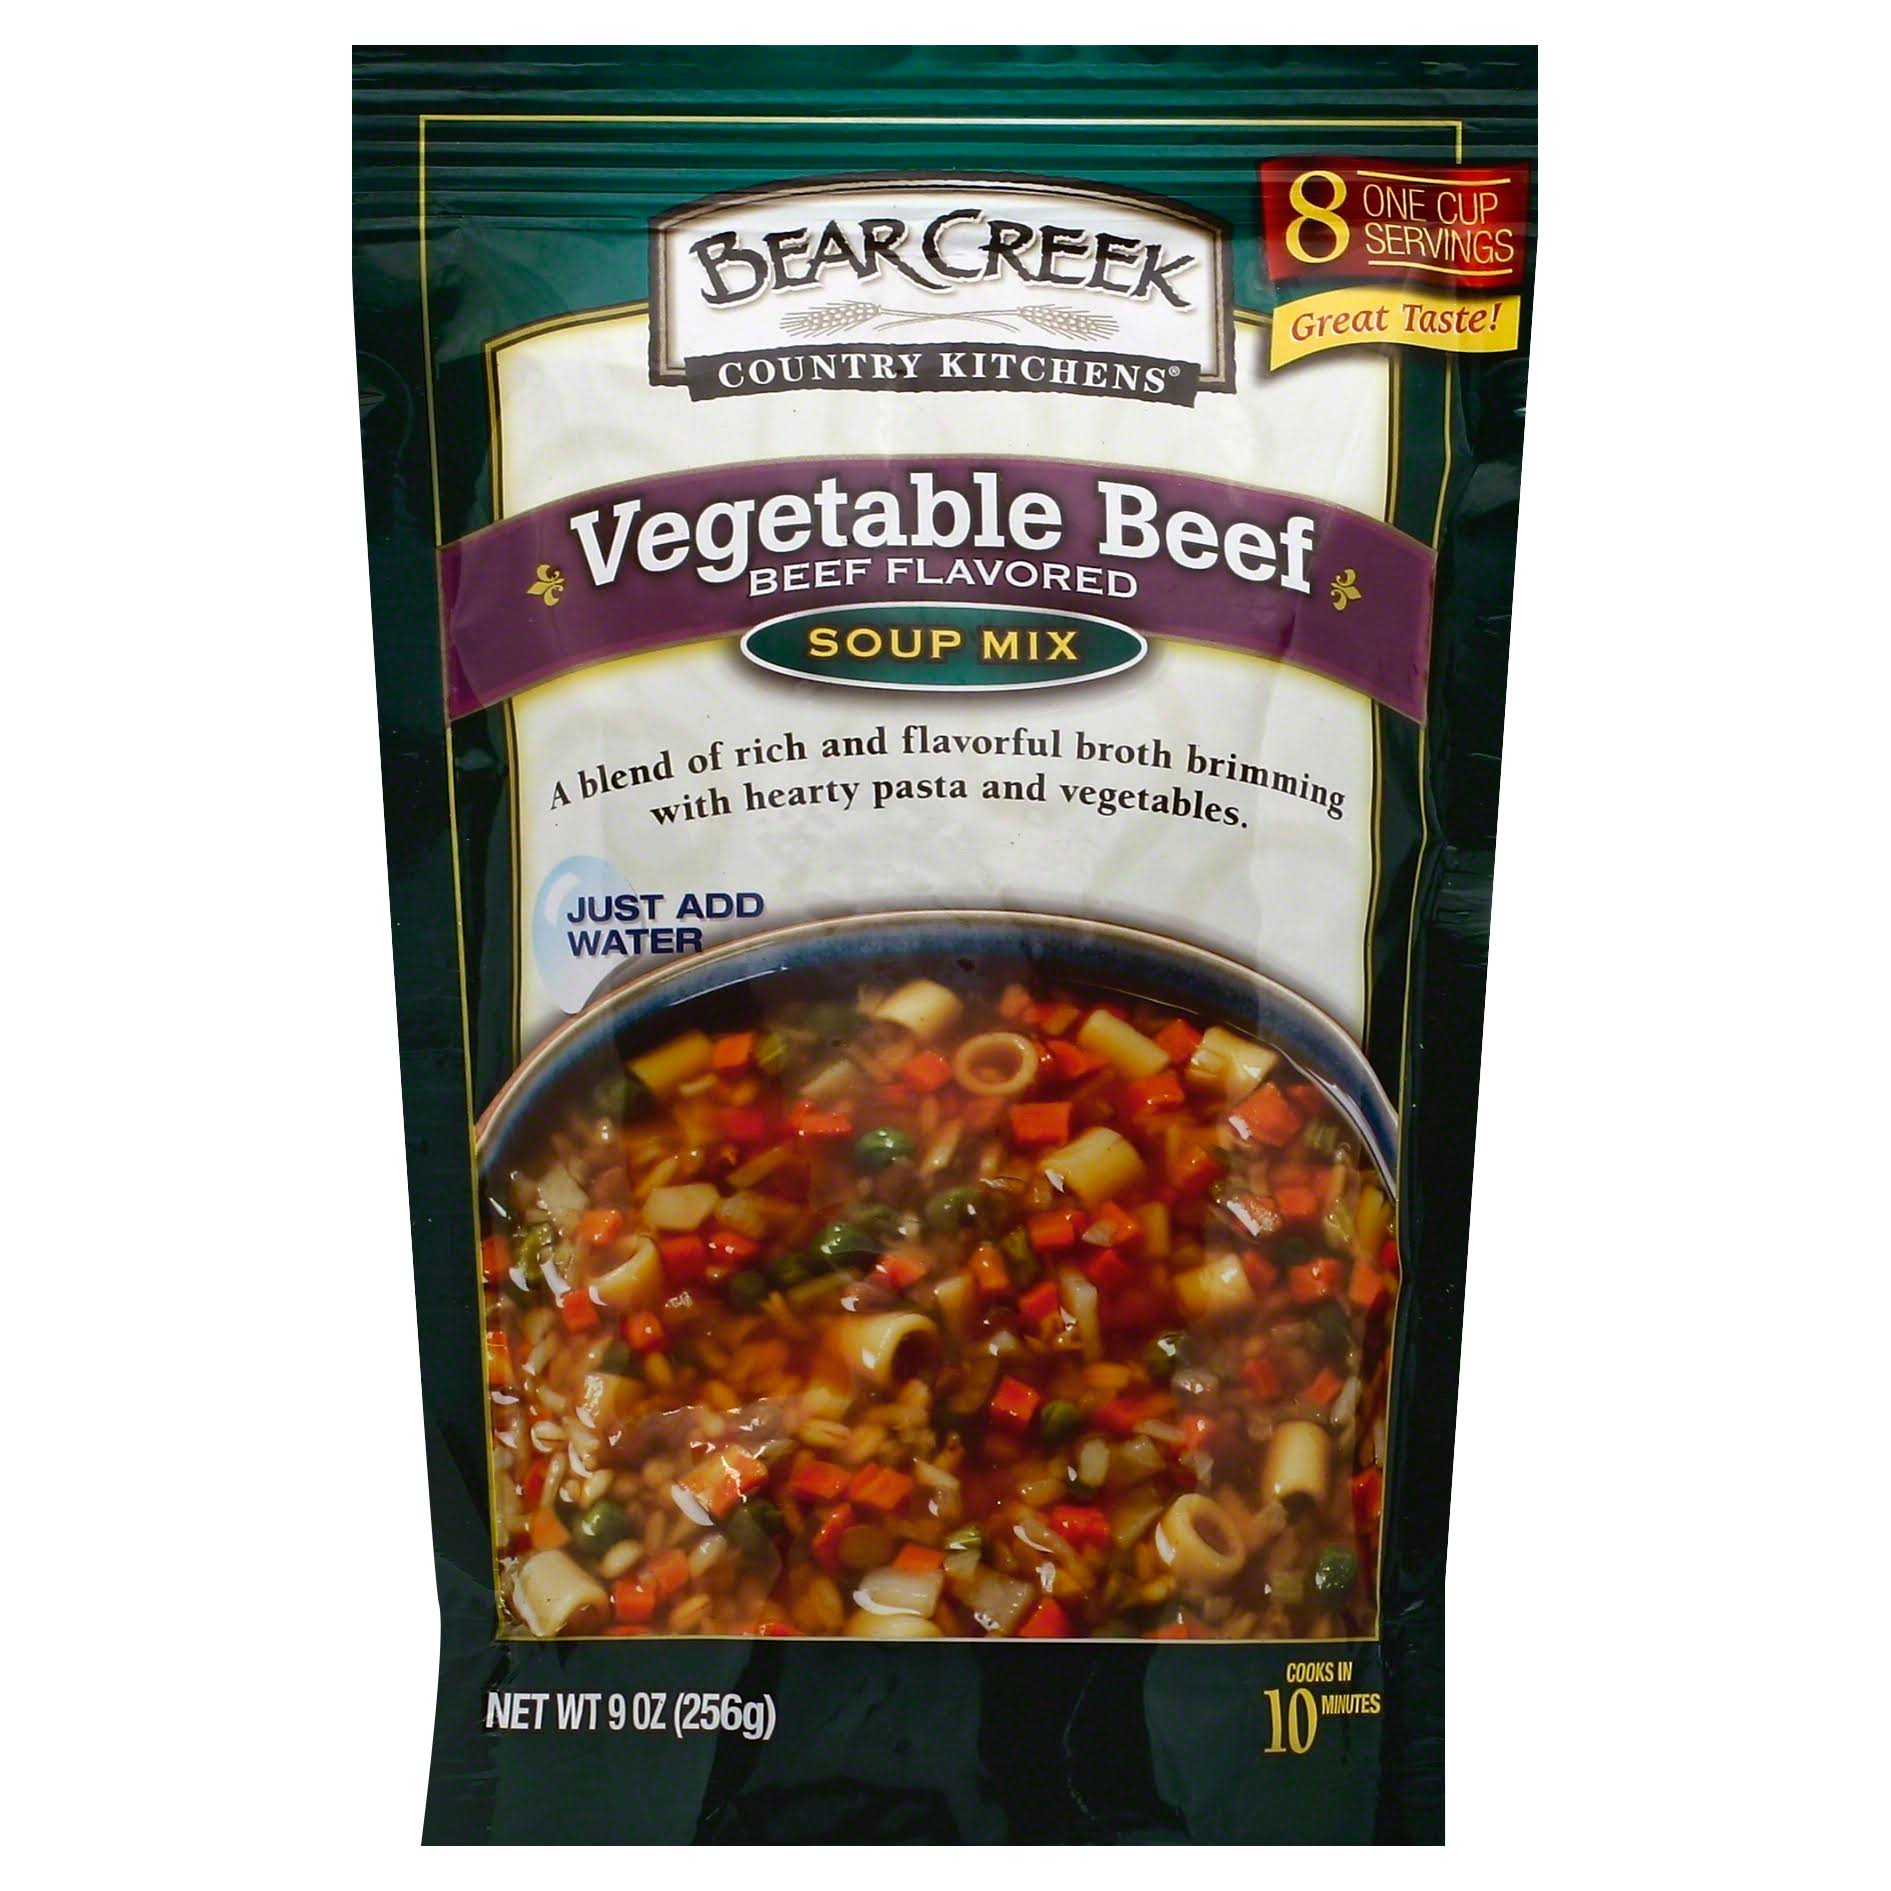 Bear Creek Country Kitchens Soup Mix - Vegetable Beef, 256g